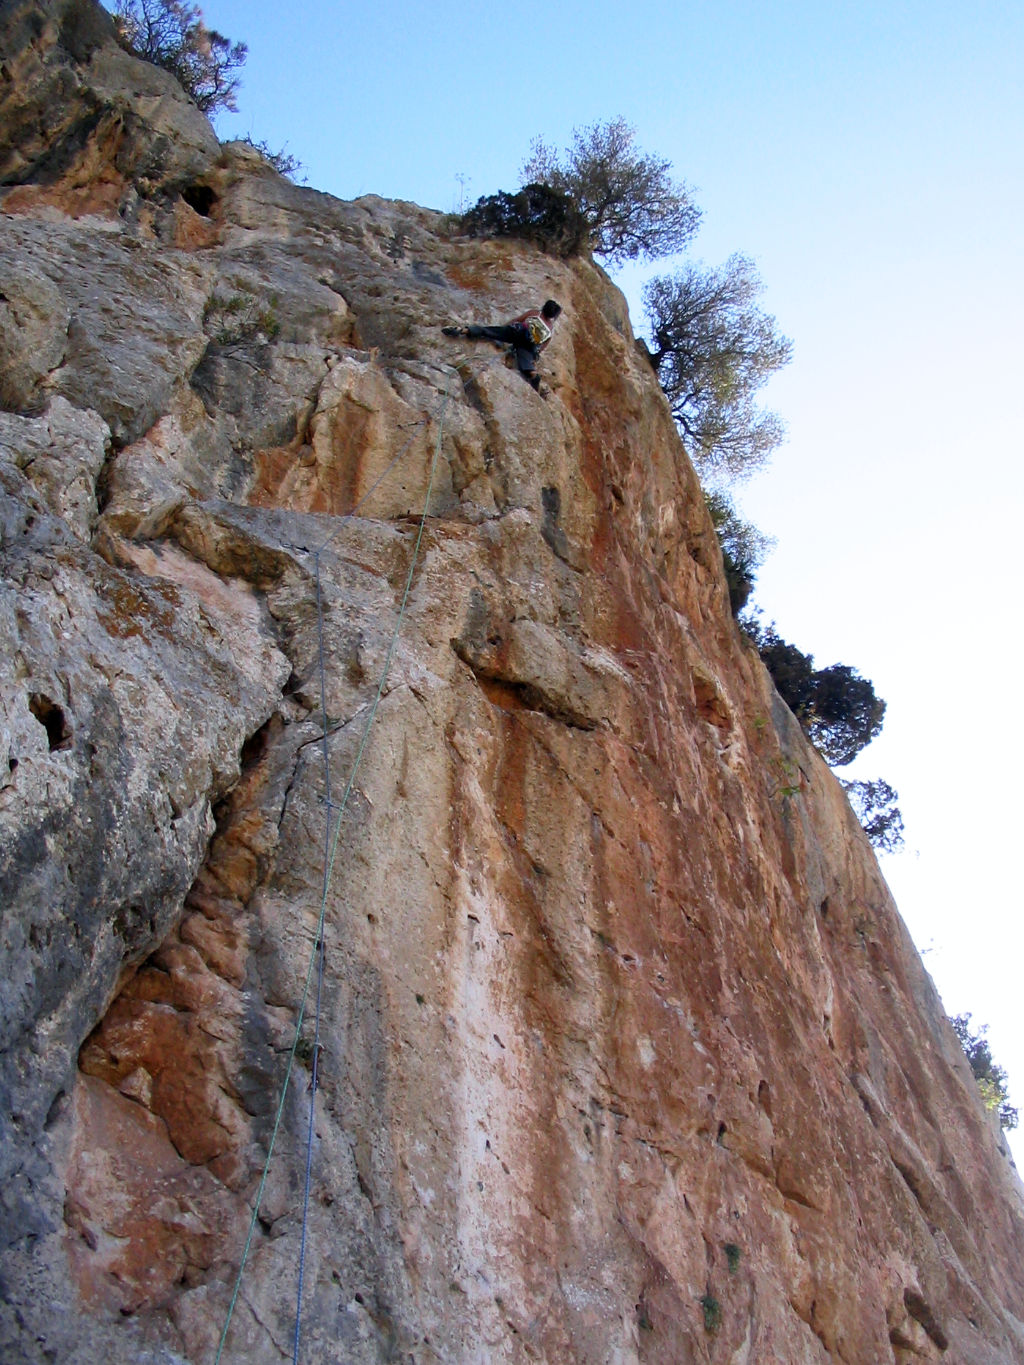 Anne-Marie climbing, route in DESPLOMILANDIA area, El Chorro, Spain